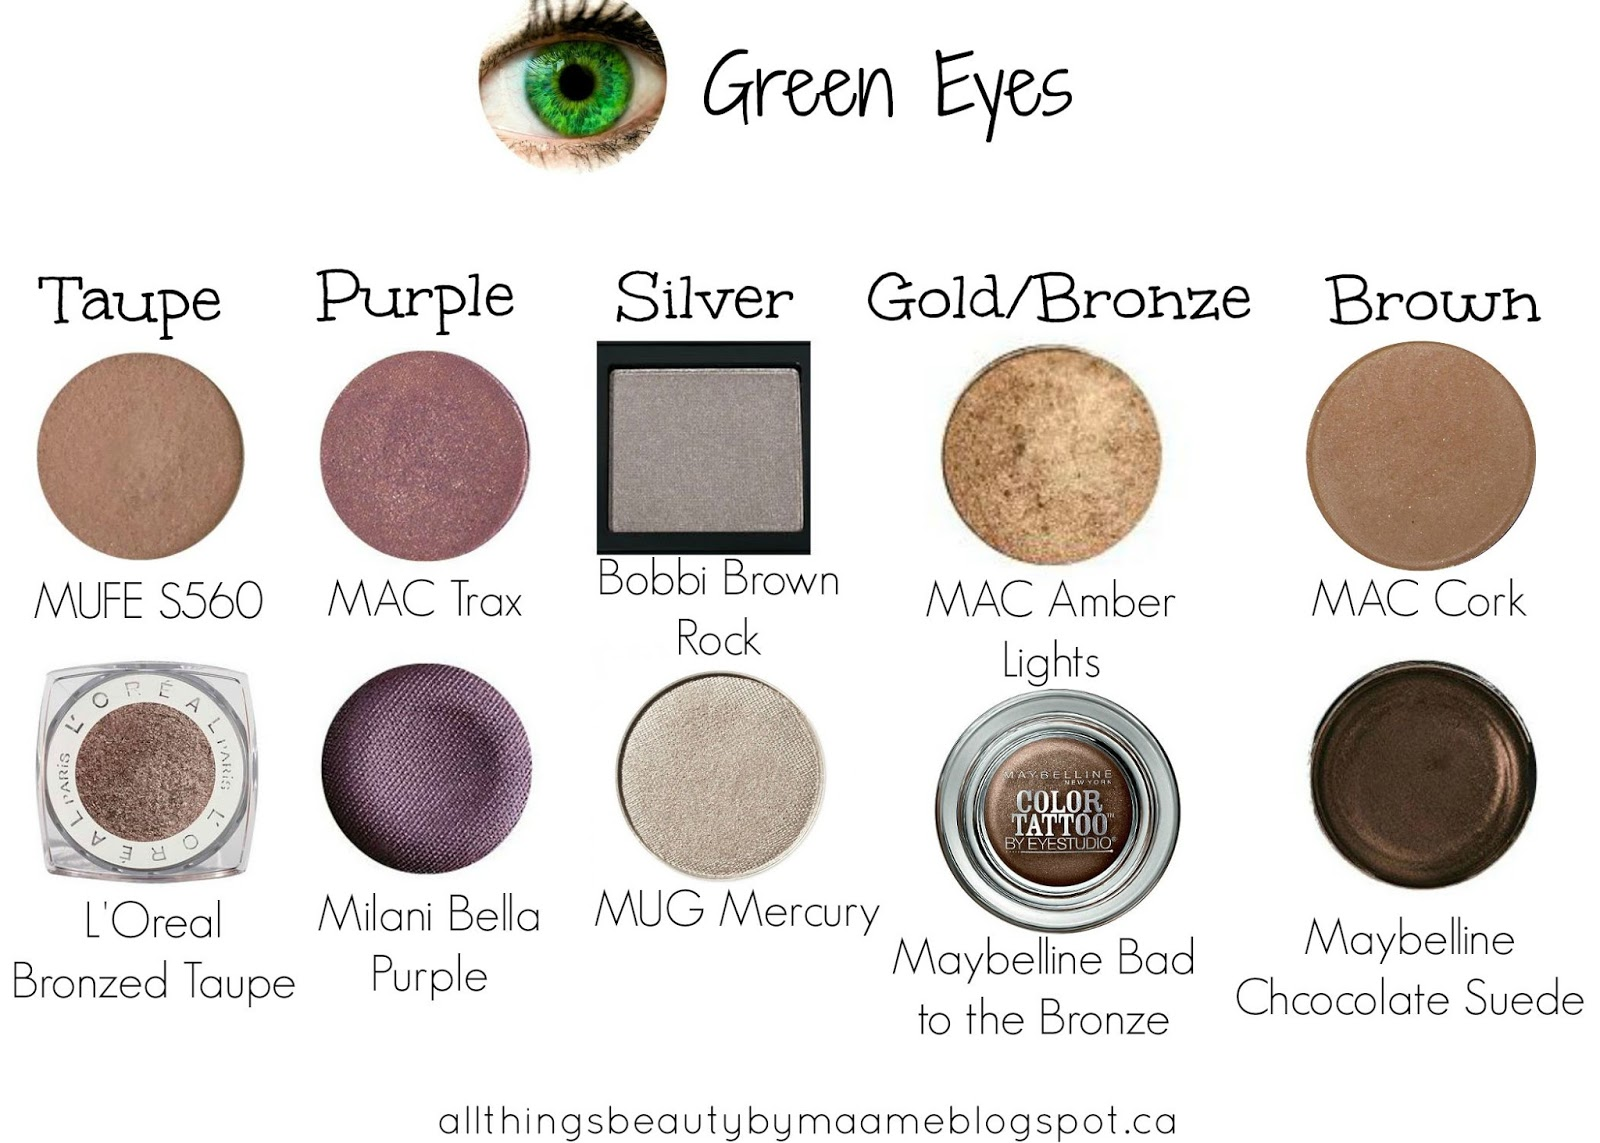 How to emphasize eye color with makeup?